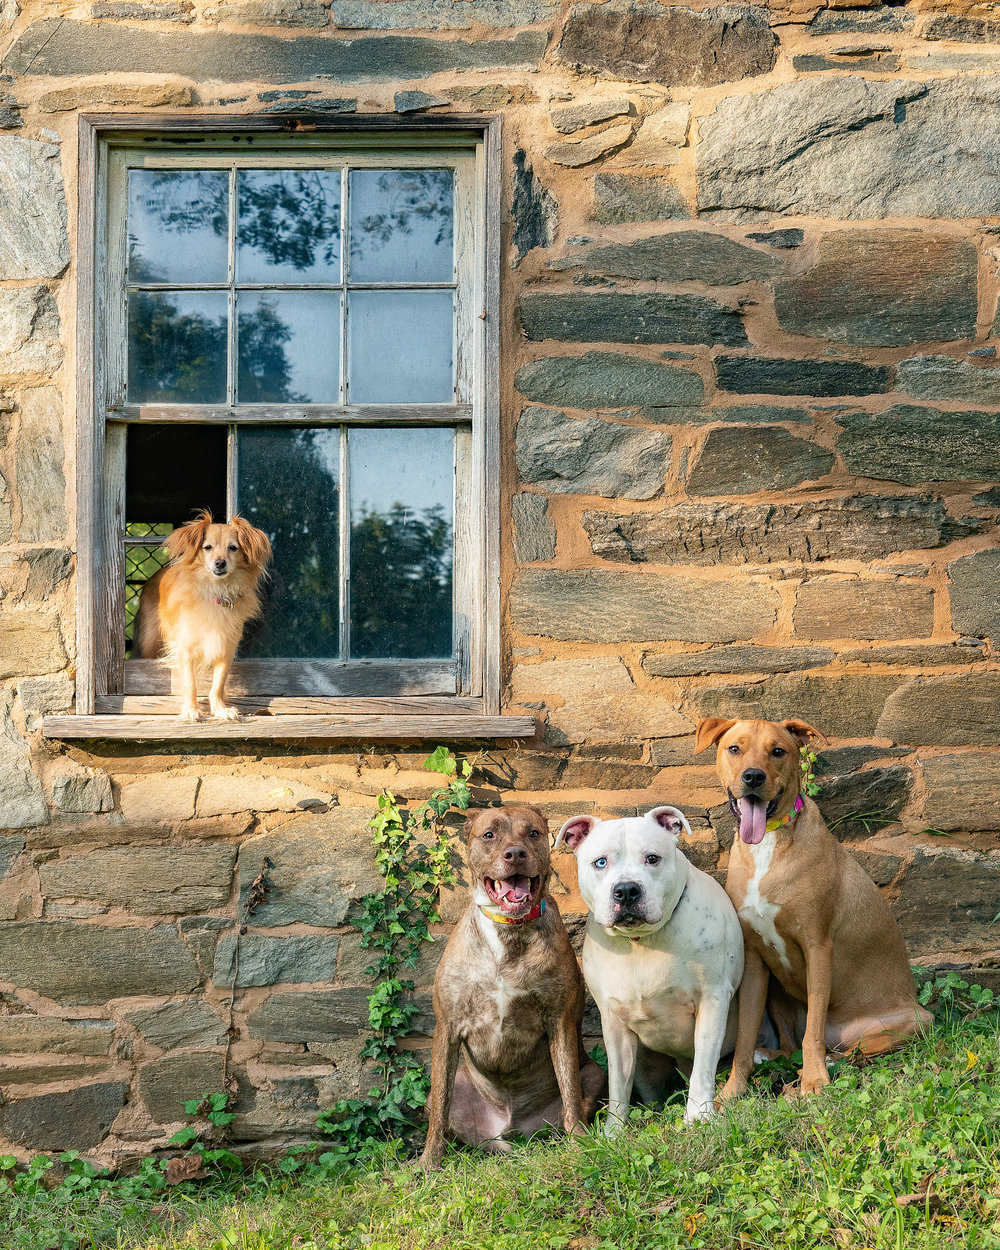 It took a few tries but we eventually captured an image with all 4 of these dogs together. The dogs did have leashes on which we edited out, but other than that this image is 100% real.